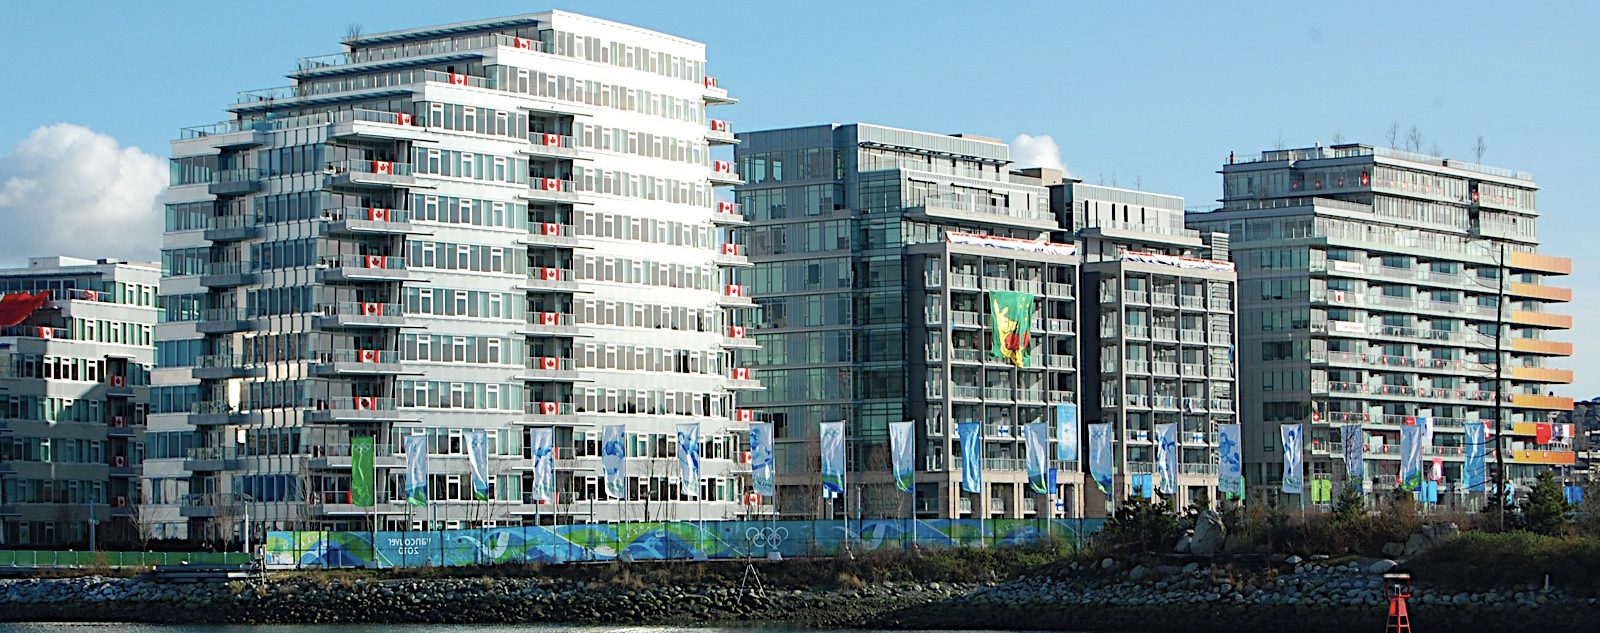 Vancouver Olympic Village - Sustainability